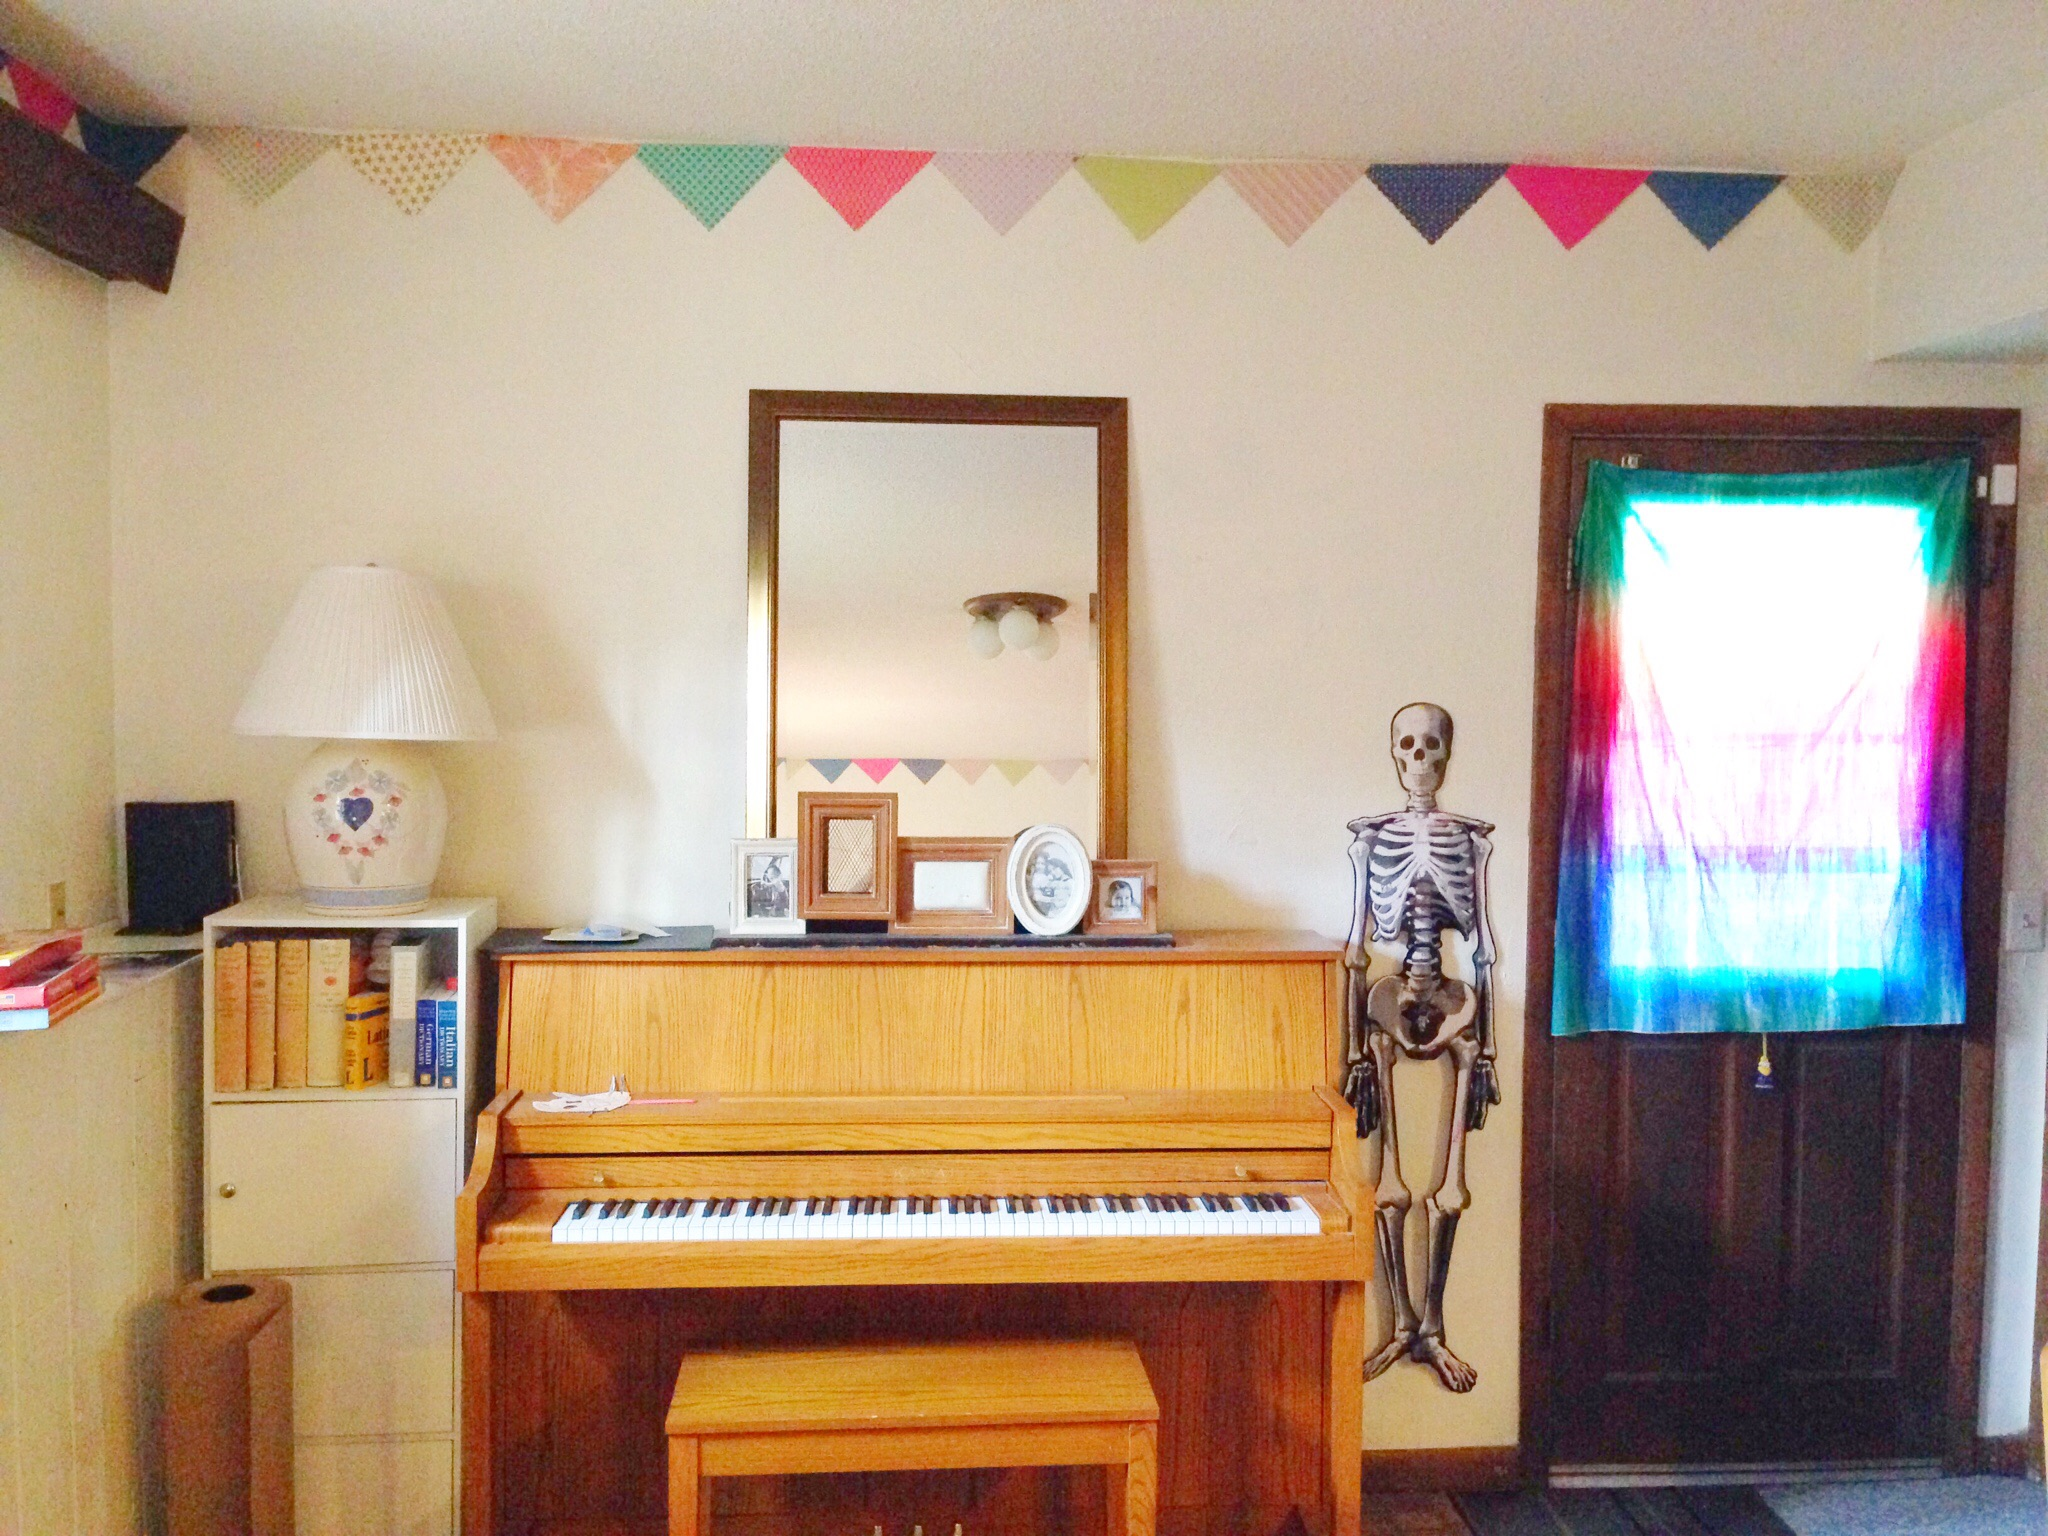 Create bunting for a border. This is our playroom/schoolroom/teaching studio.